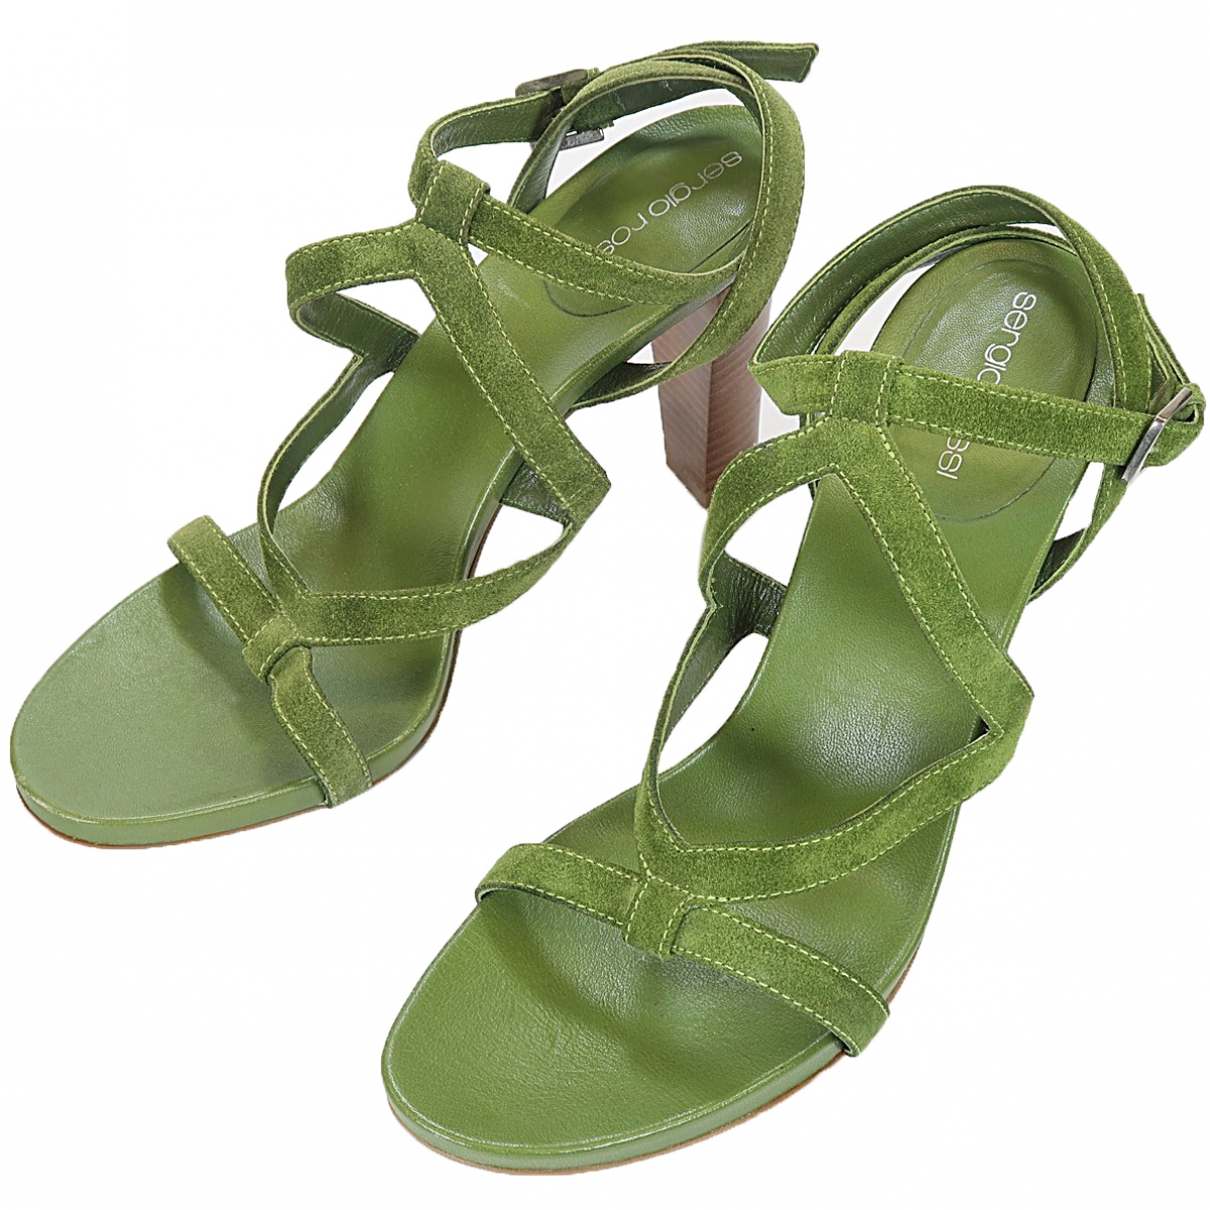 Sergio Rossi \N Green Suede Sandals for Women 40 EU